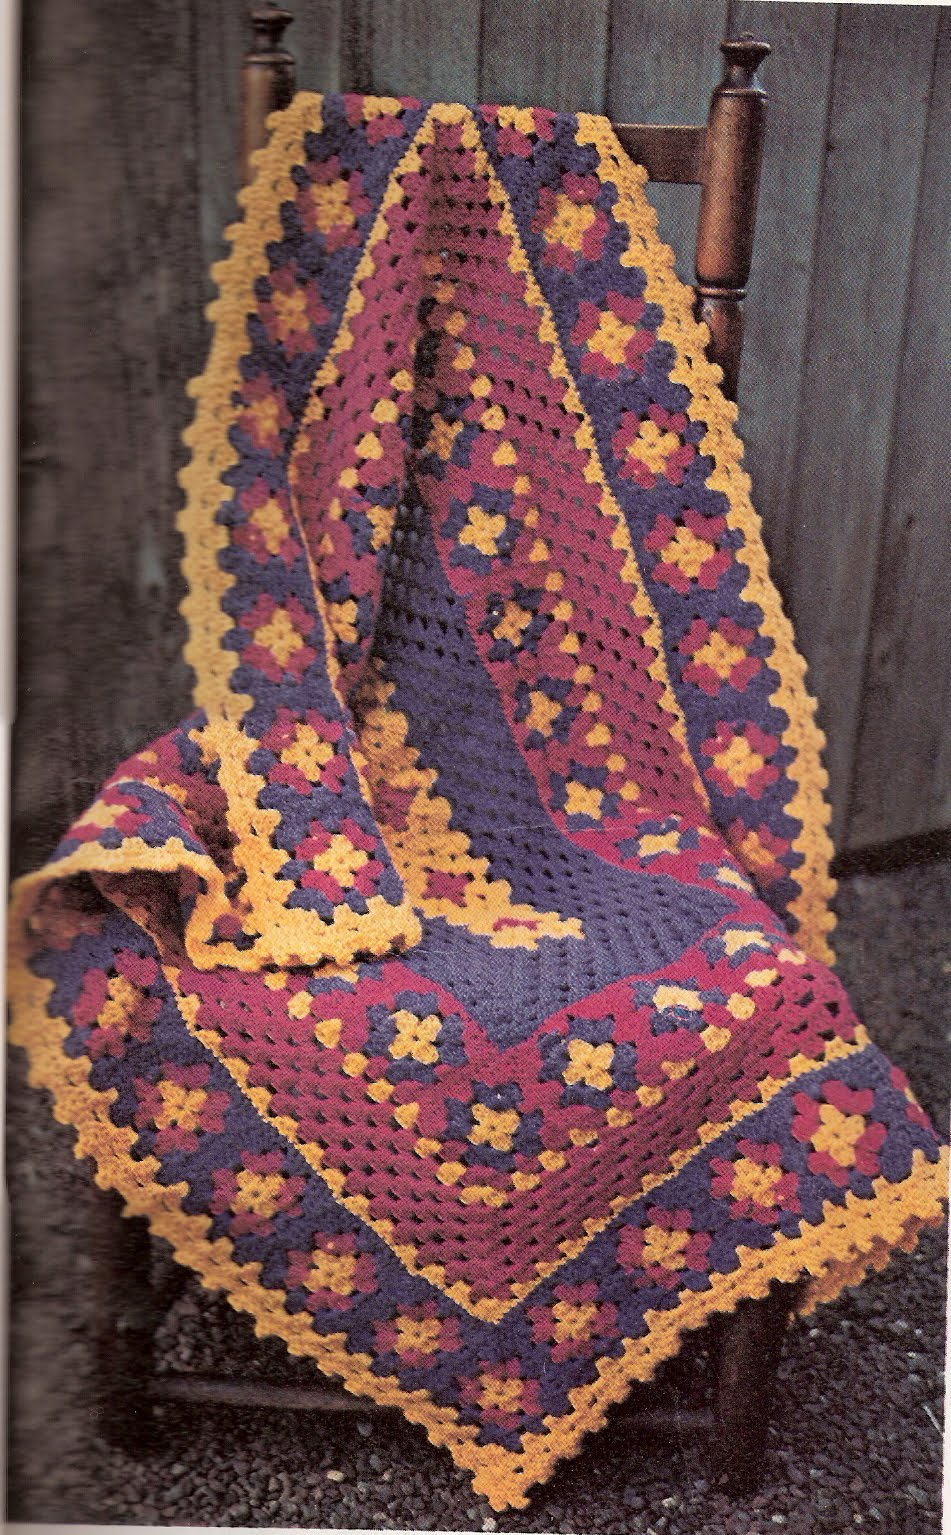 crochet blanket crochet blanket pattern crochet blanket patterns ...